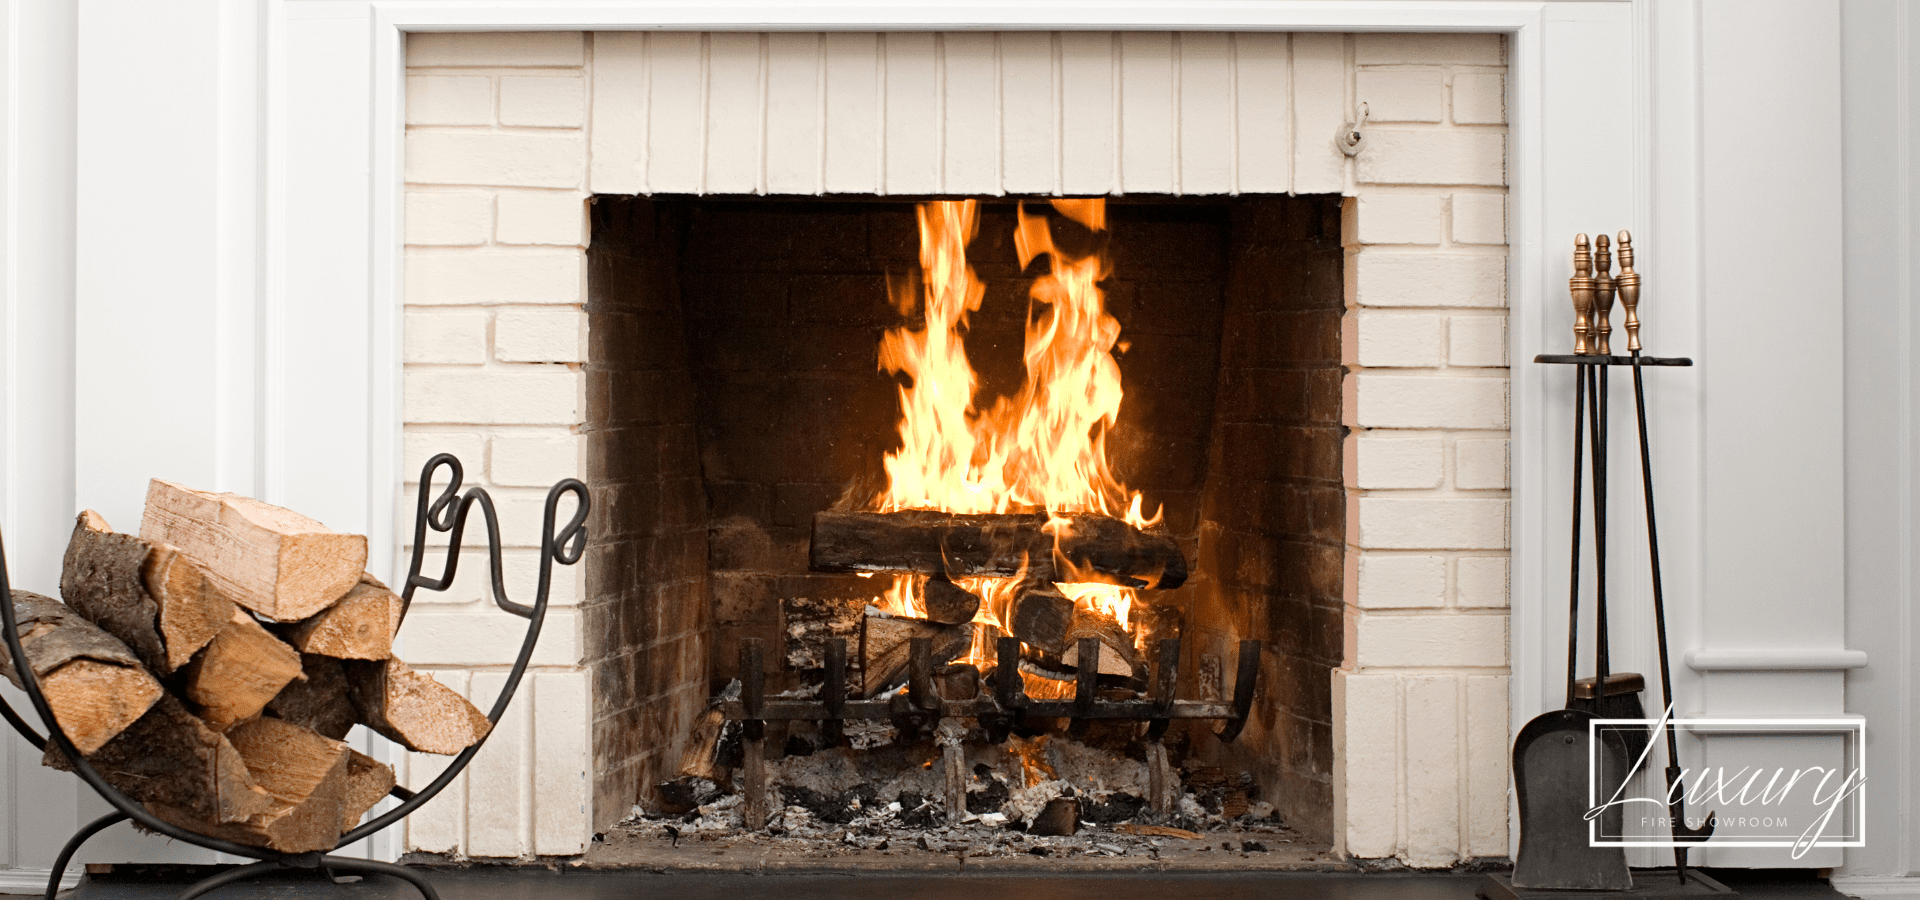 Fireplace showrooms in Cheshire including ourselves as Luxury Fireplaces Manchester cater for all your fireplace needs. Entry to the blog article supporting this message.